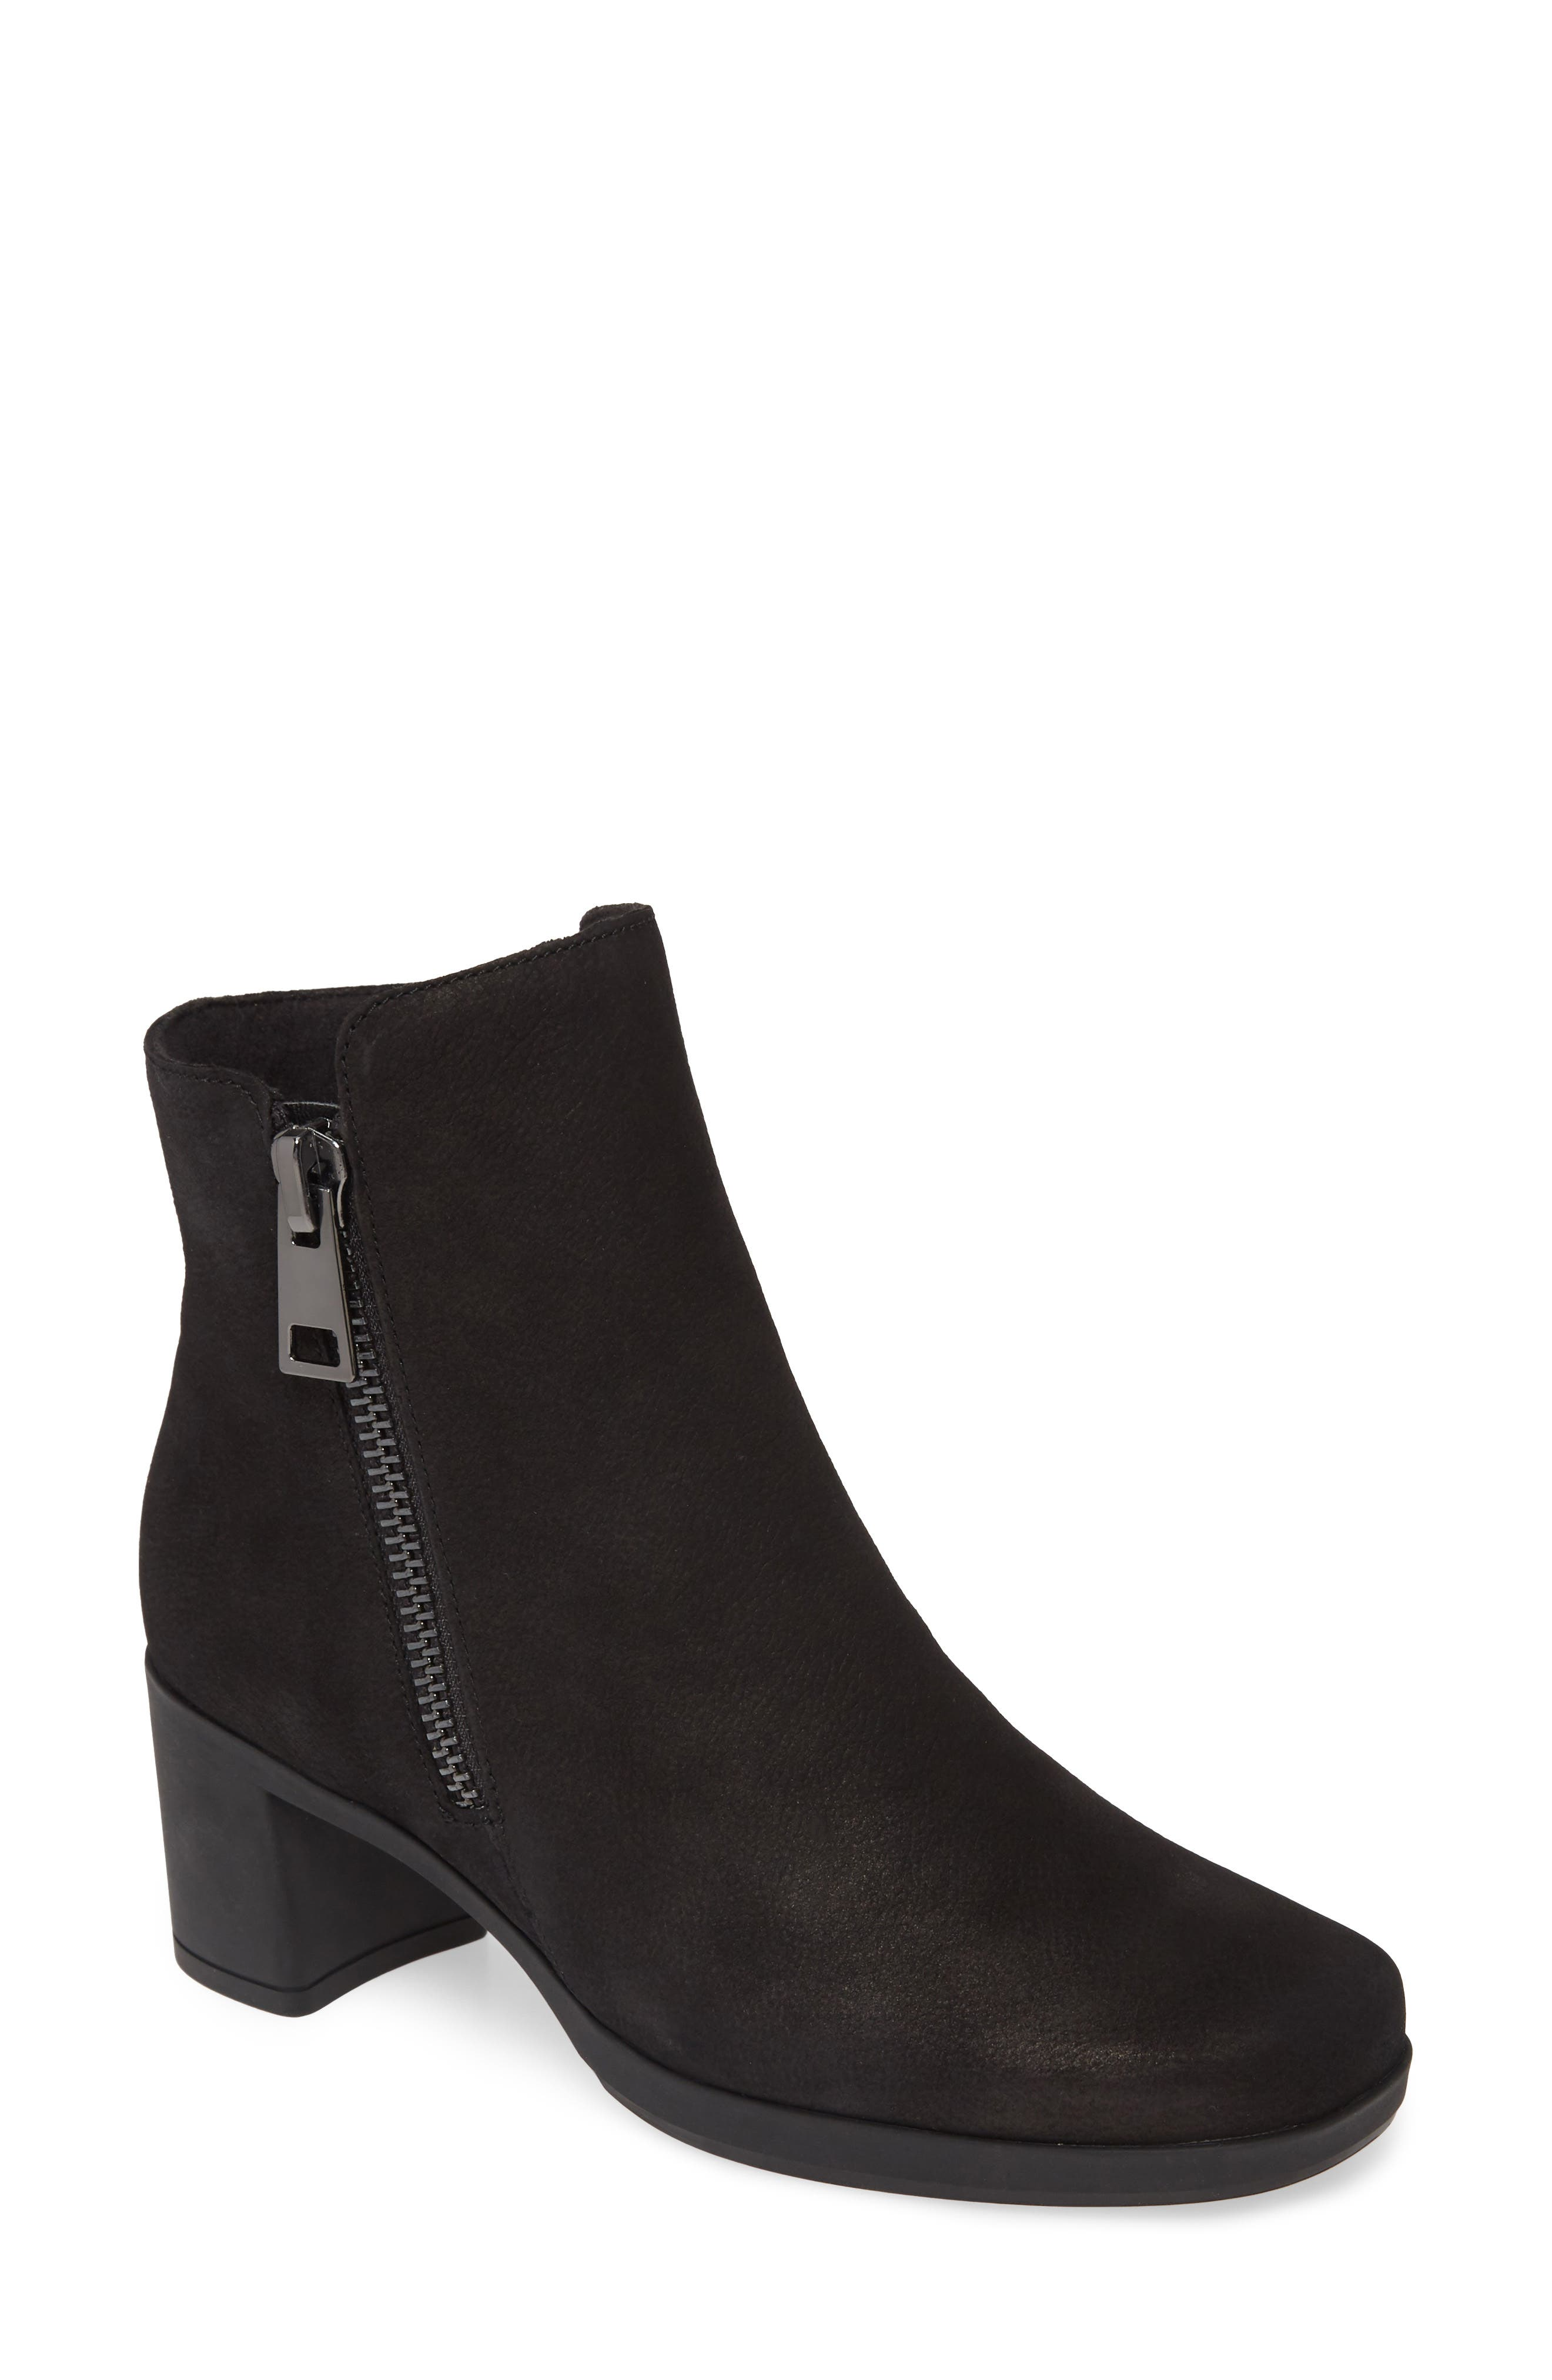 Understated sophistication and custom comfort are the name of the game with a block-heel bootie in a suave, streamlined silhouette. Style Name: Munro Devon Bootie (Women). Style Number: 5858885. Available in stores.